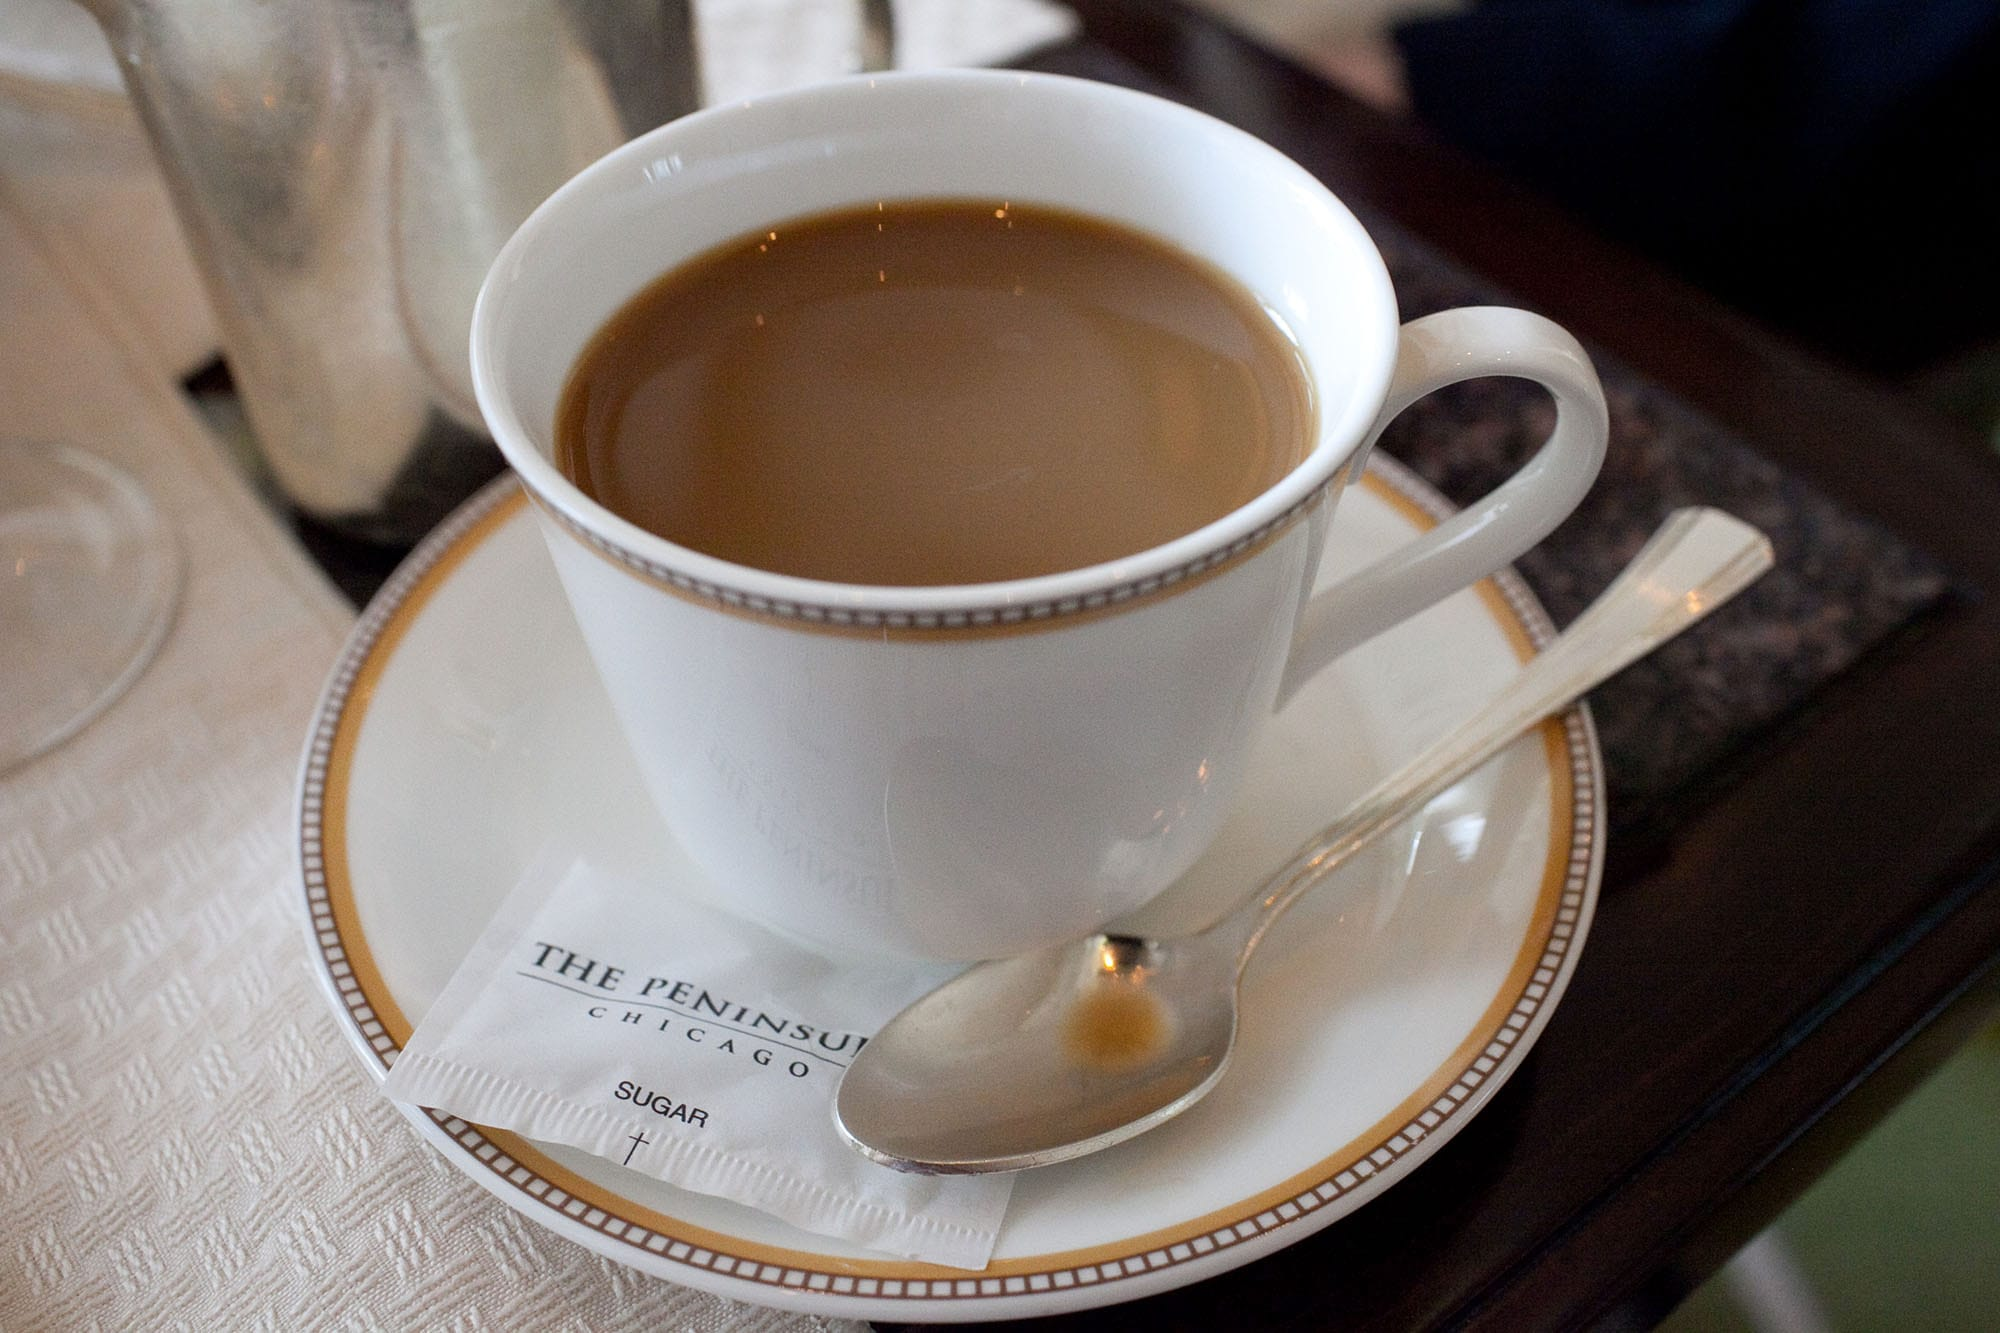 Coffee at afternoon tea at the Lobby at The Peninsula in Chicago, Illinois.